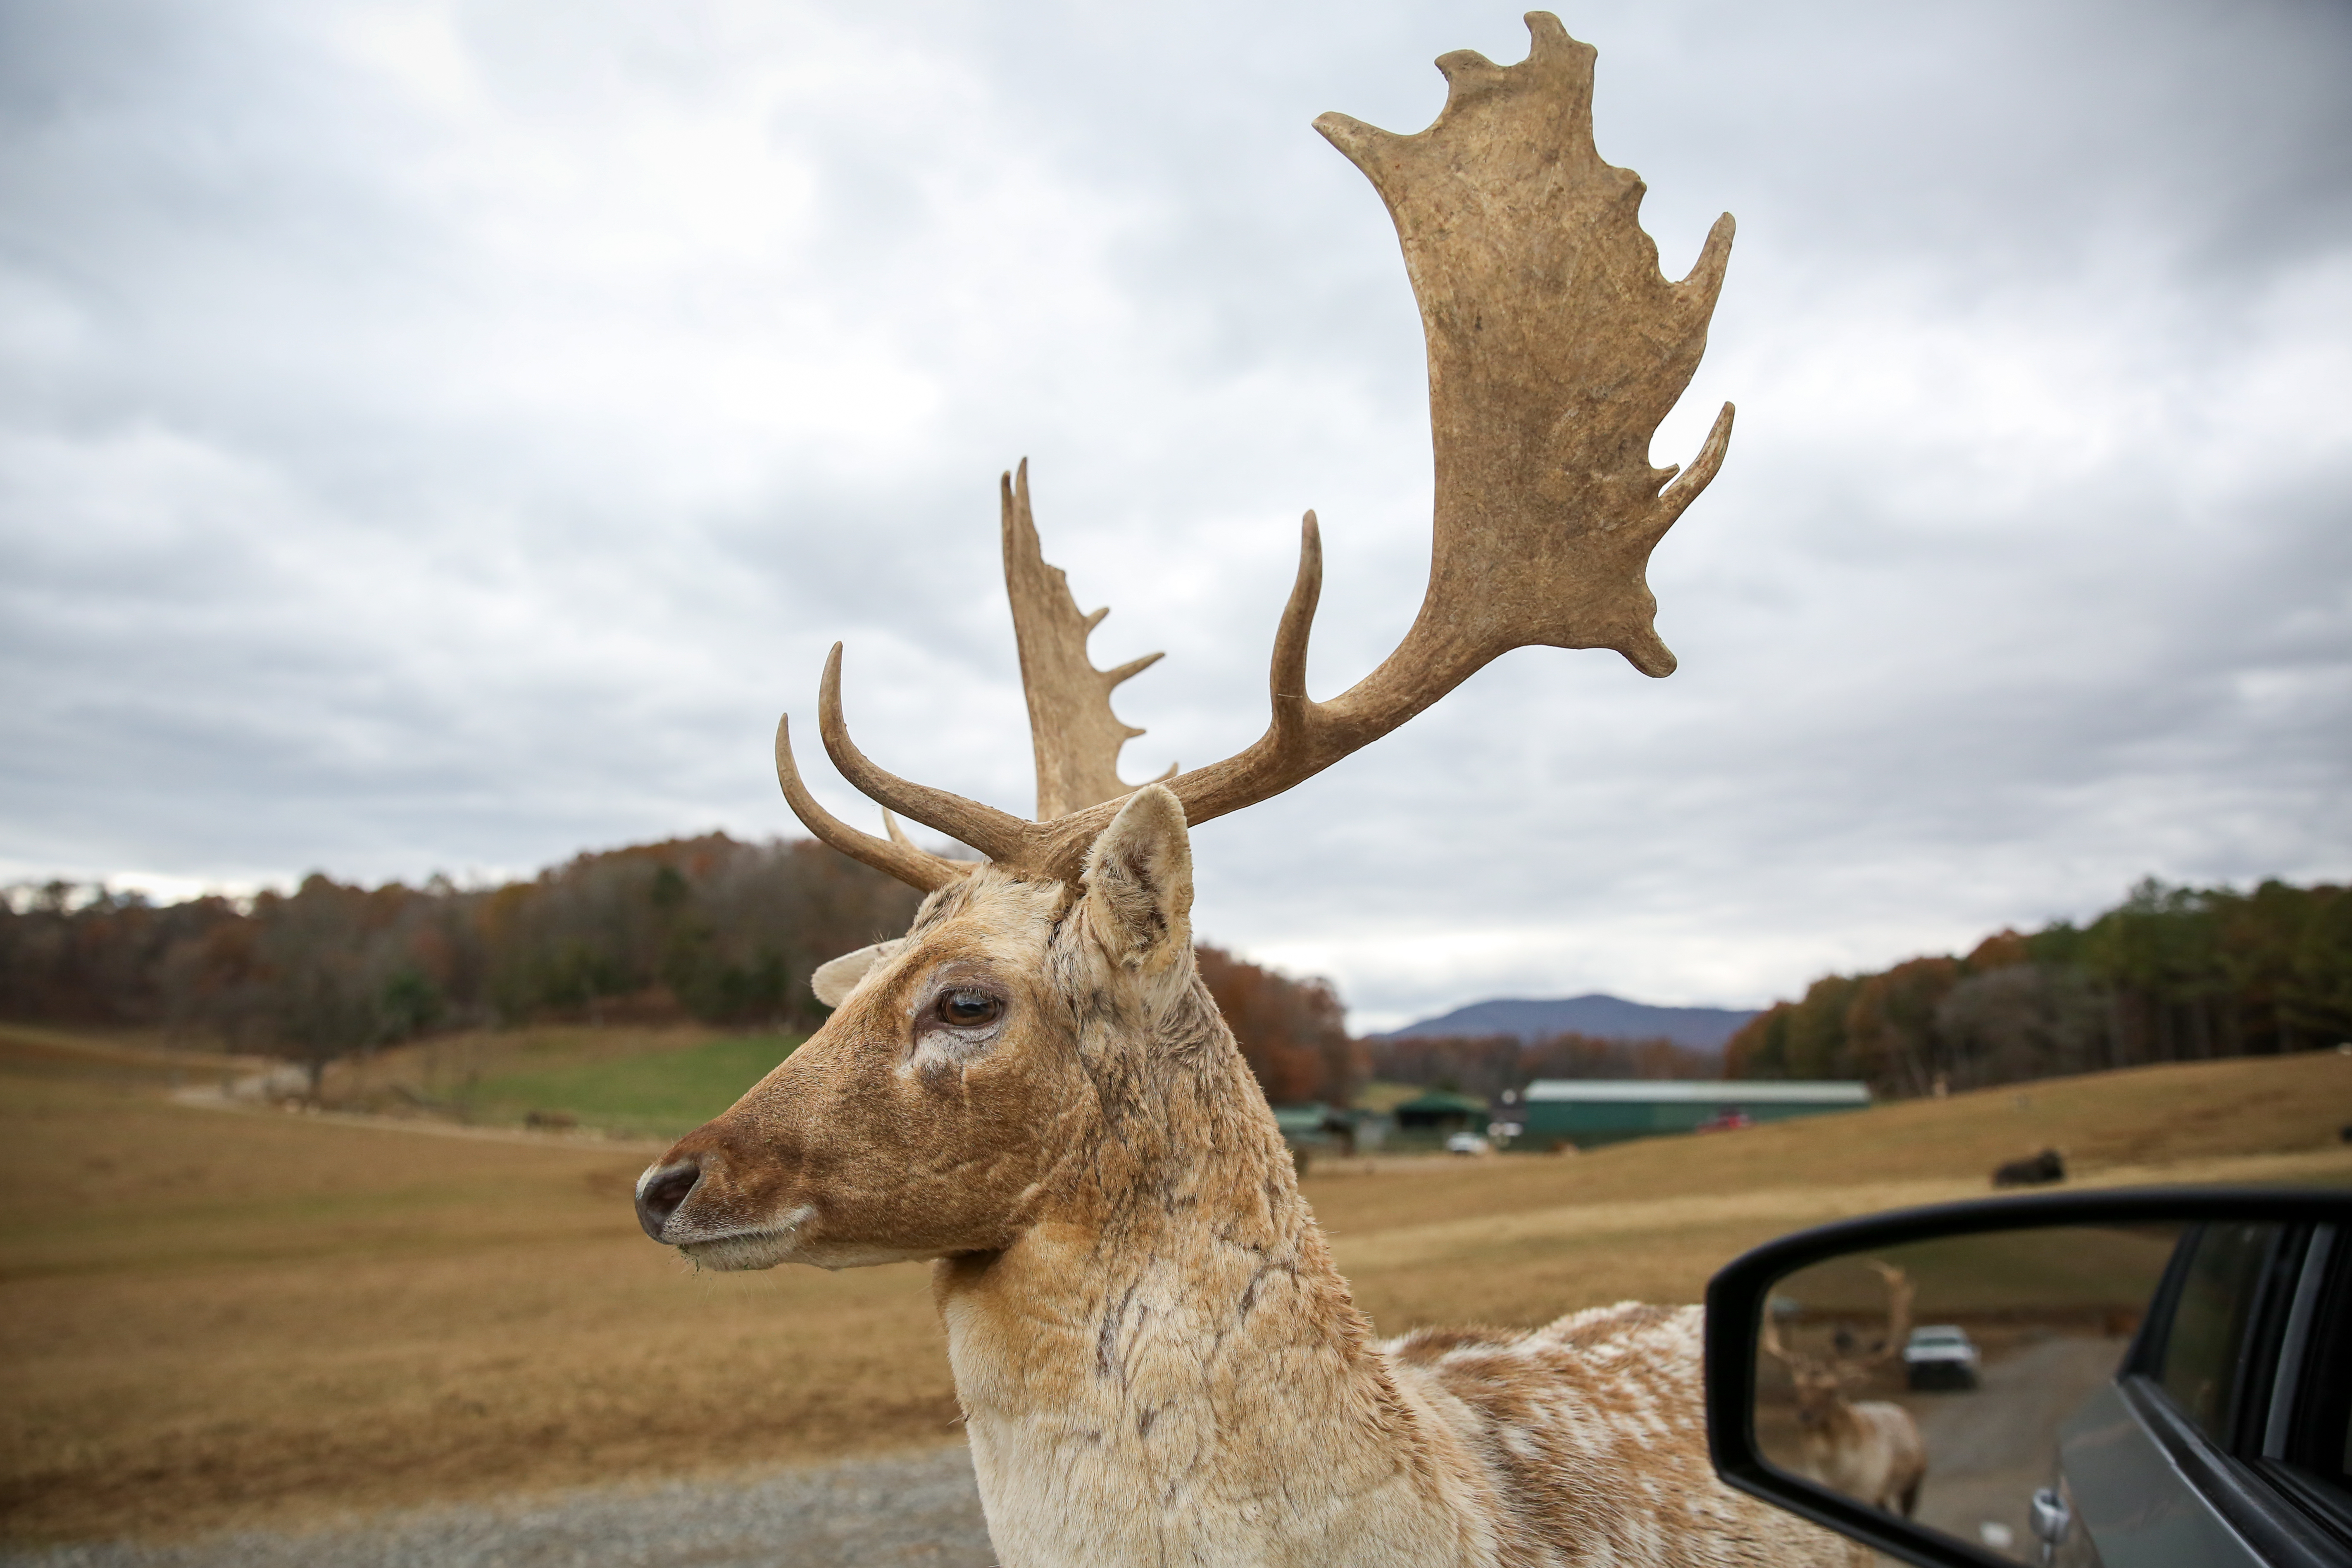 About 200 miles southwest of D.C., elk, ostriches, llamas, bison, deer  and exotic animas roam the mountains at Virginia Safari Park. Visitors can pay to drive slowly over three miles of road to feed and interact with these animals, offering the opportunity to get up close and personal. The park closes for the winter on November 26, so now is a great time to experience this unique attraction. For adults, admission is $20, but you'll definitely want to splurge on a bottle of feed. (Amanda Andrade-Rhoades/DC Refined)